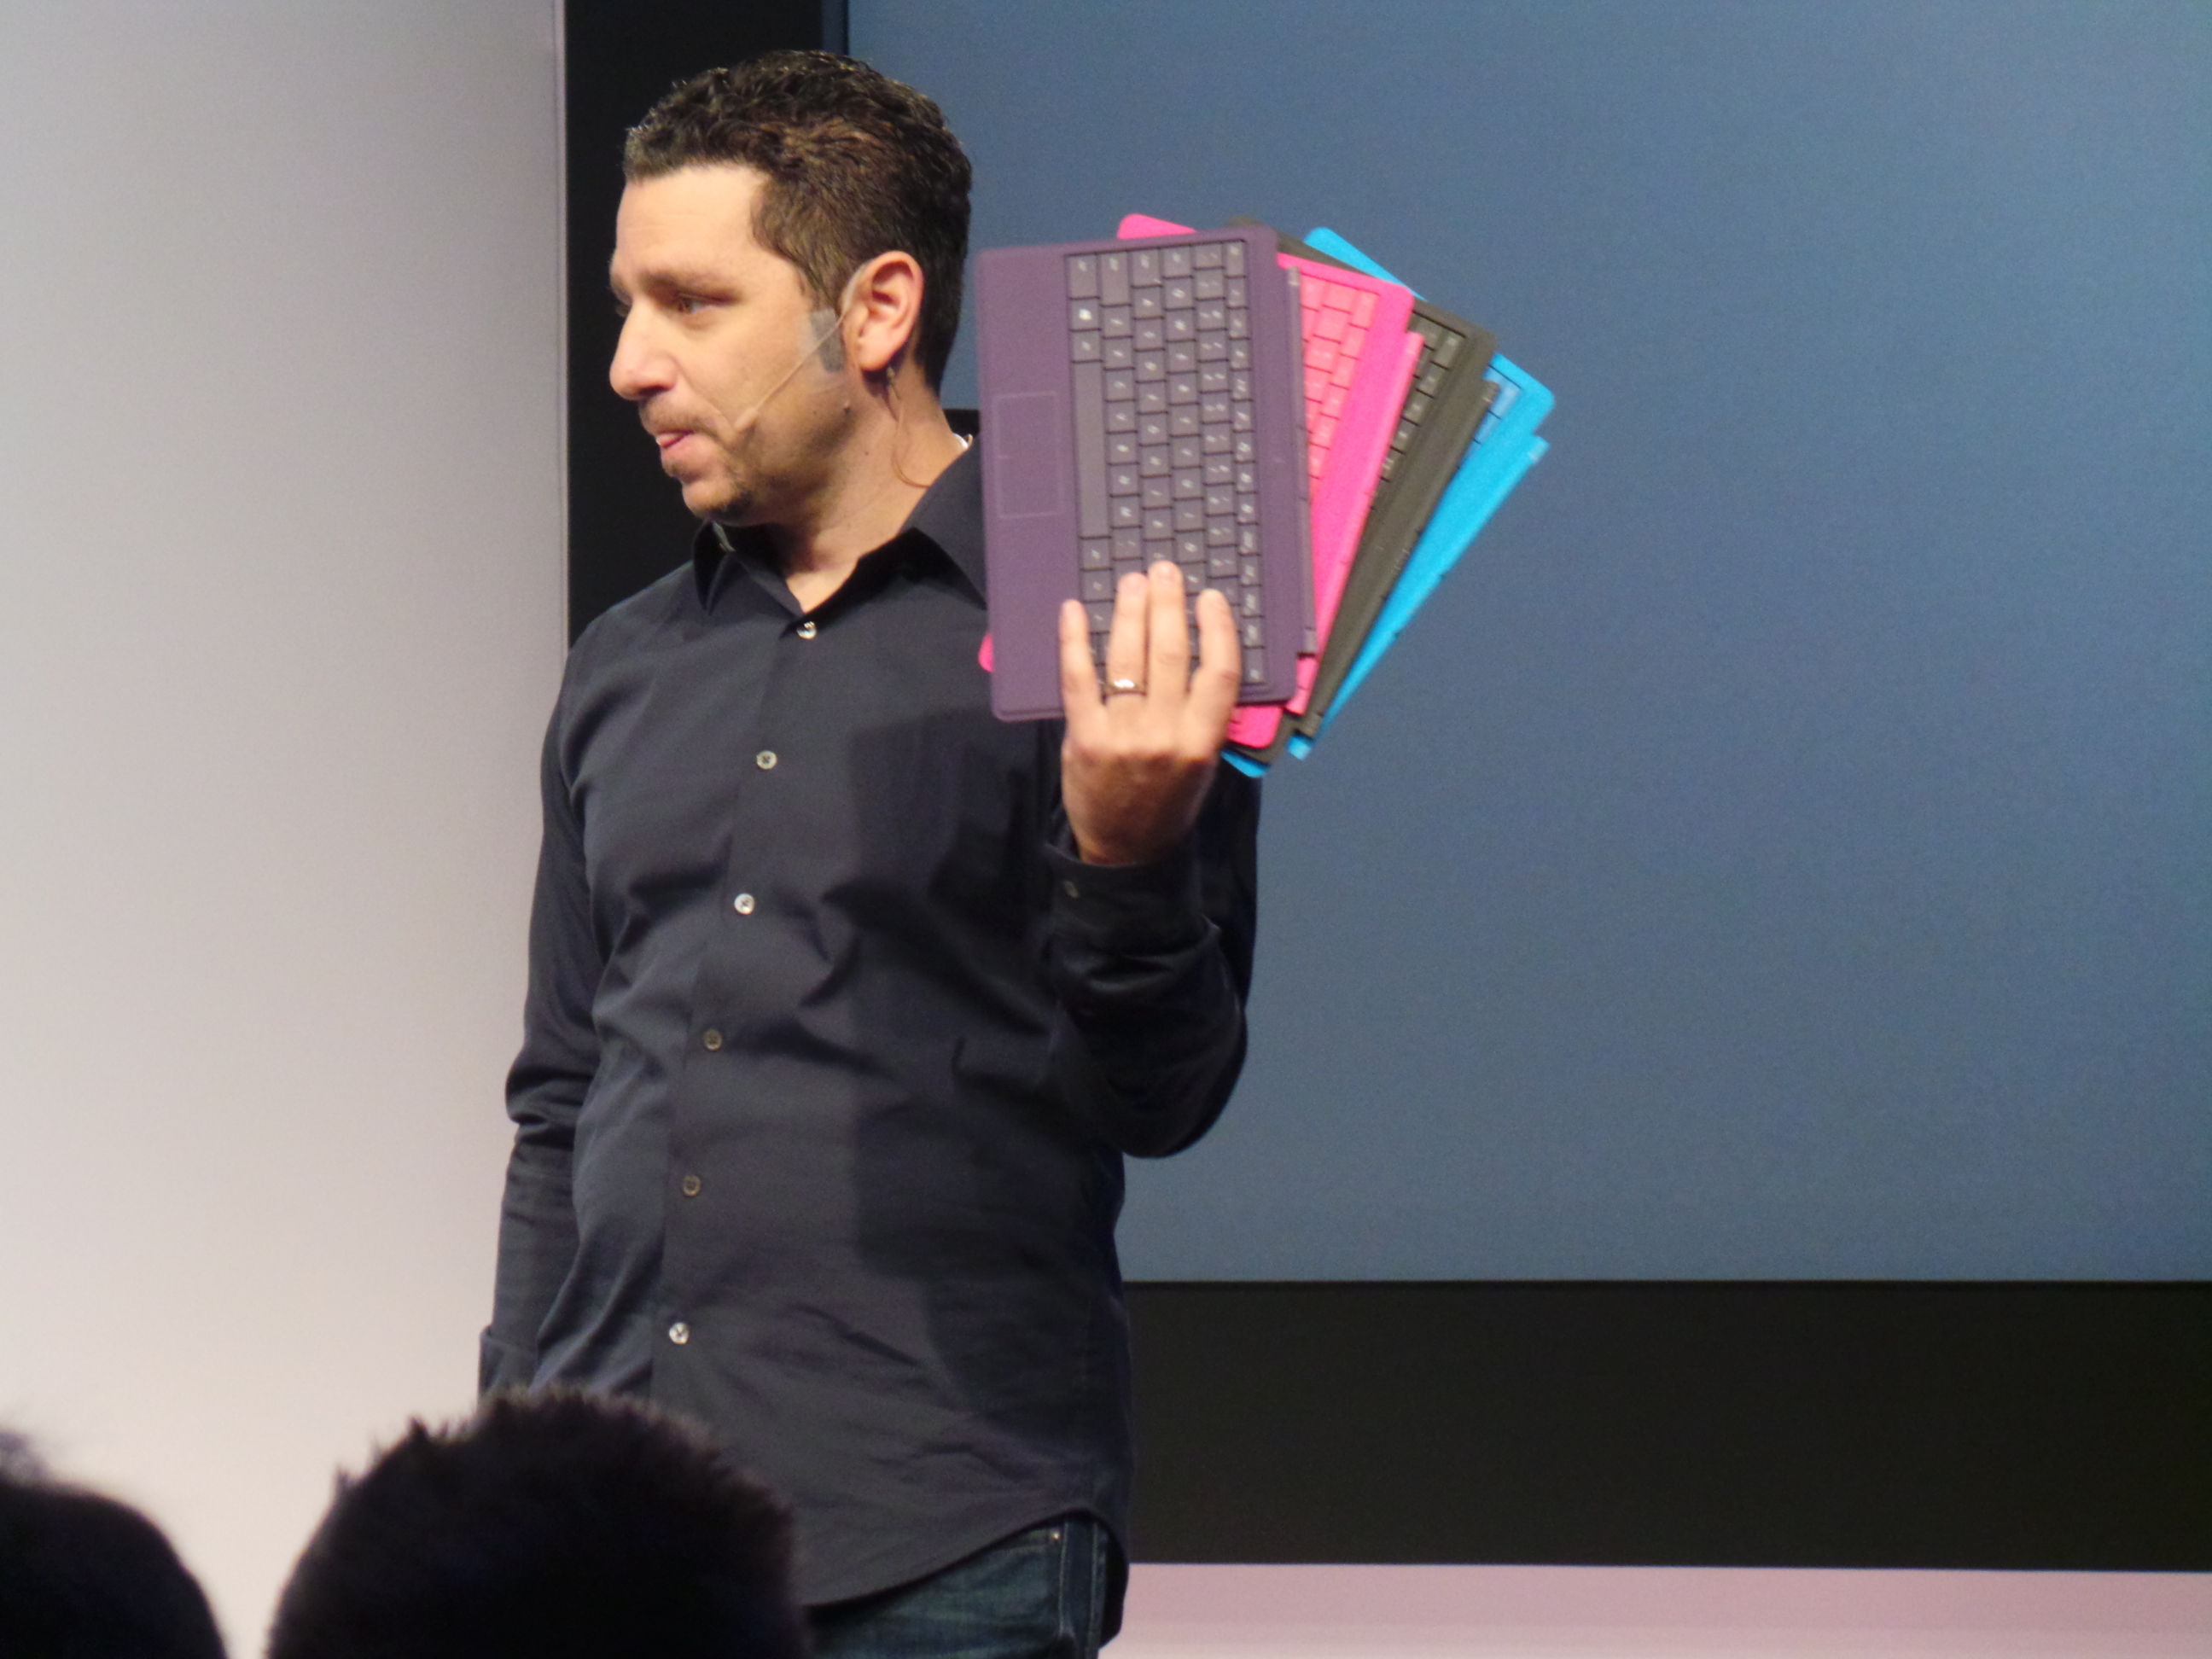 Microsoft Surface 2 and Surface Pro 2 Type Covers (Keyboards)